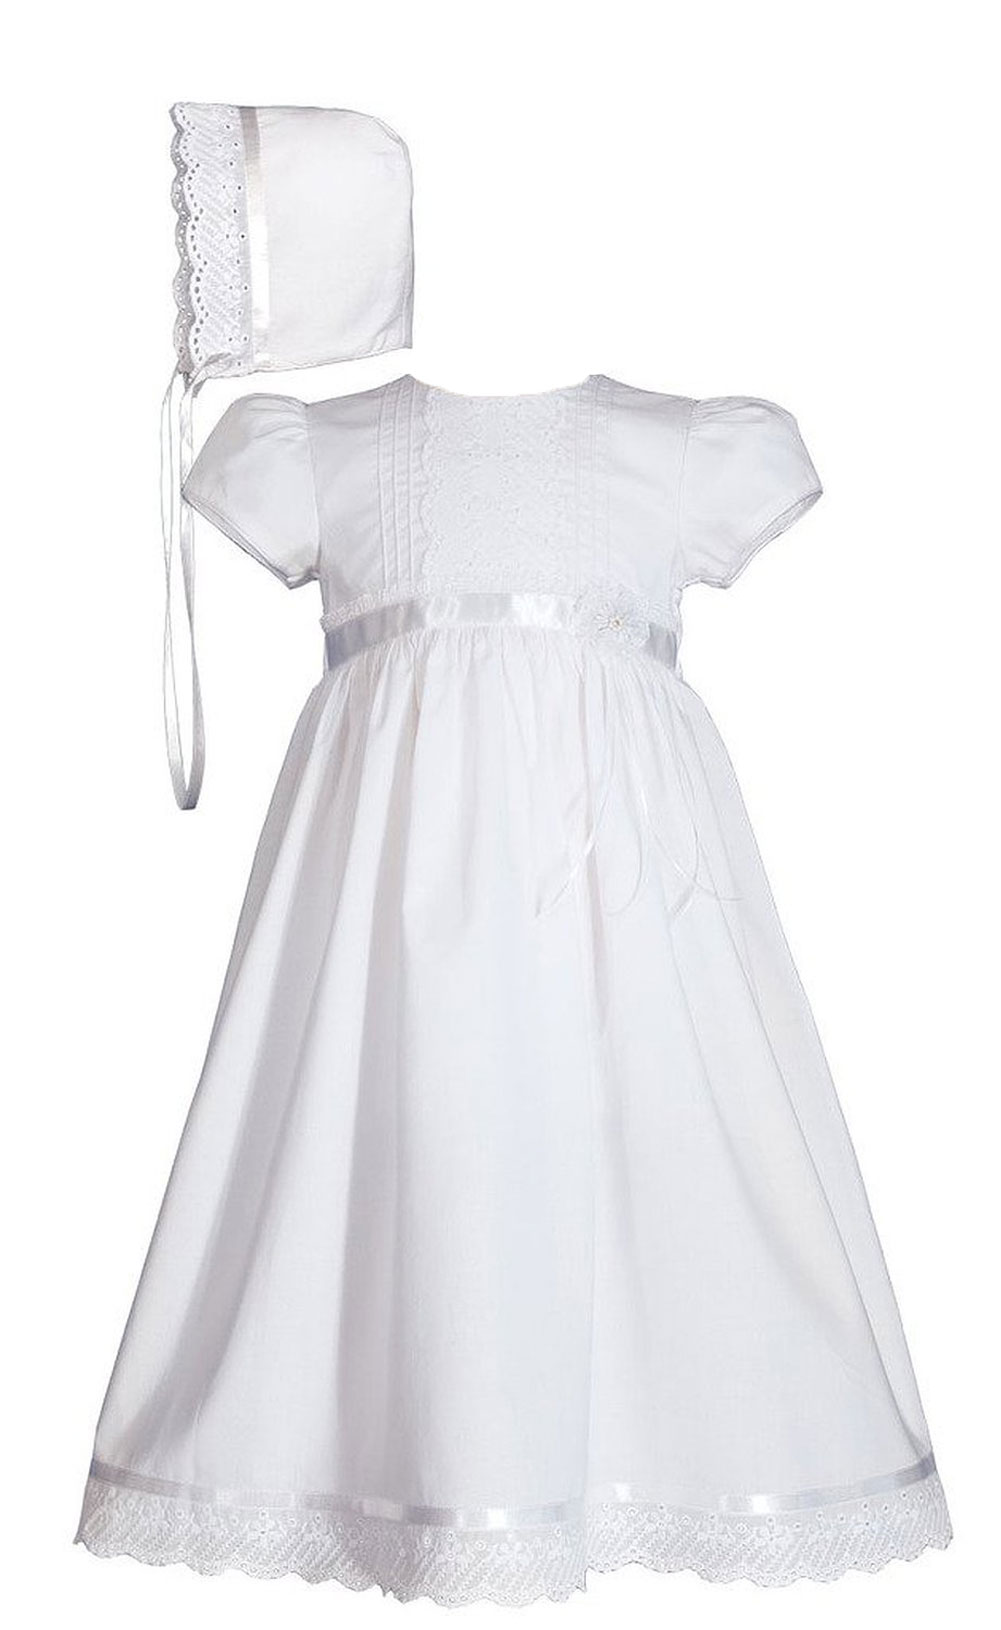 Girls 24 Quot Cotton Dress Christening Gown Baptism Gown With